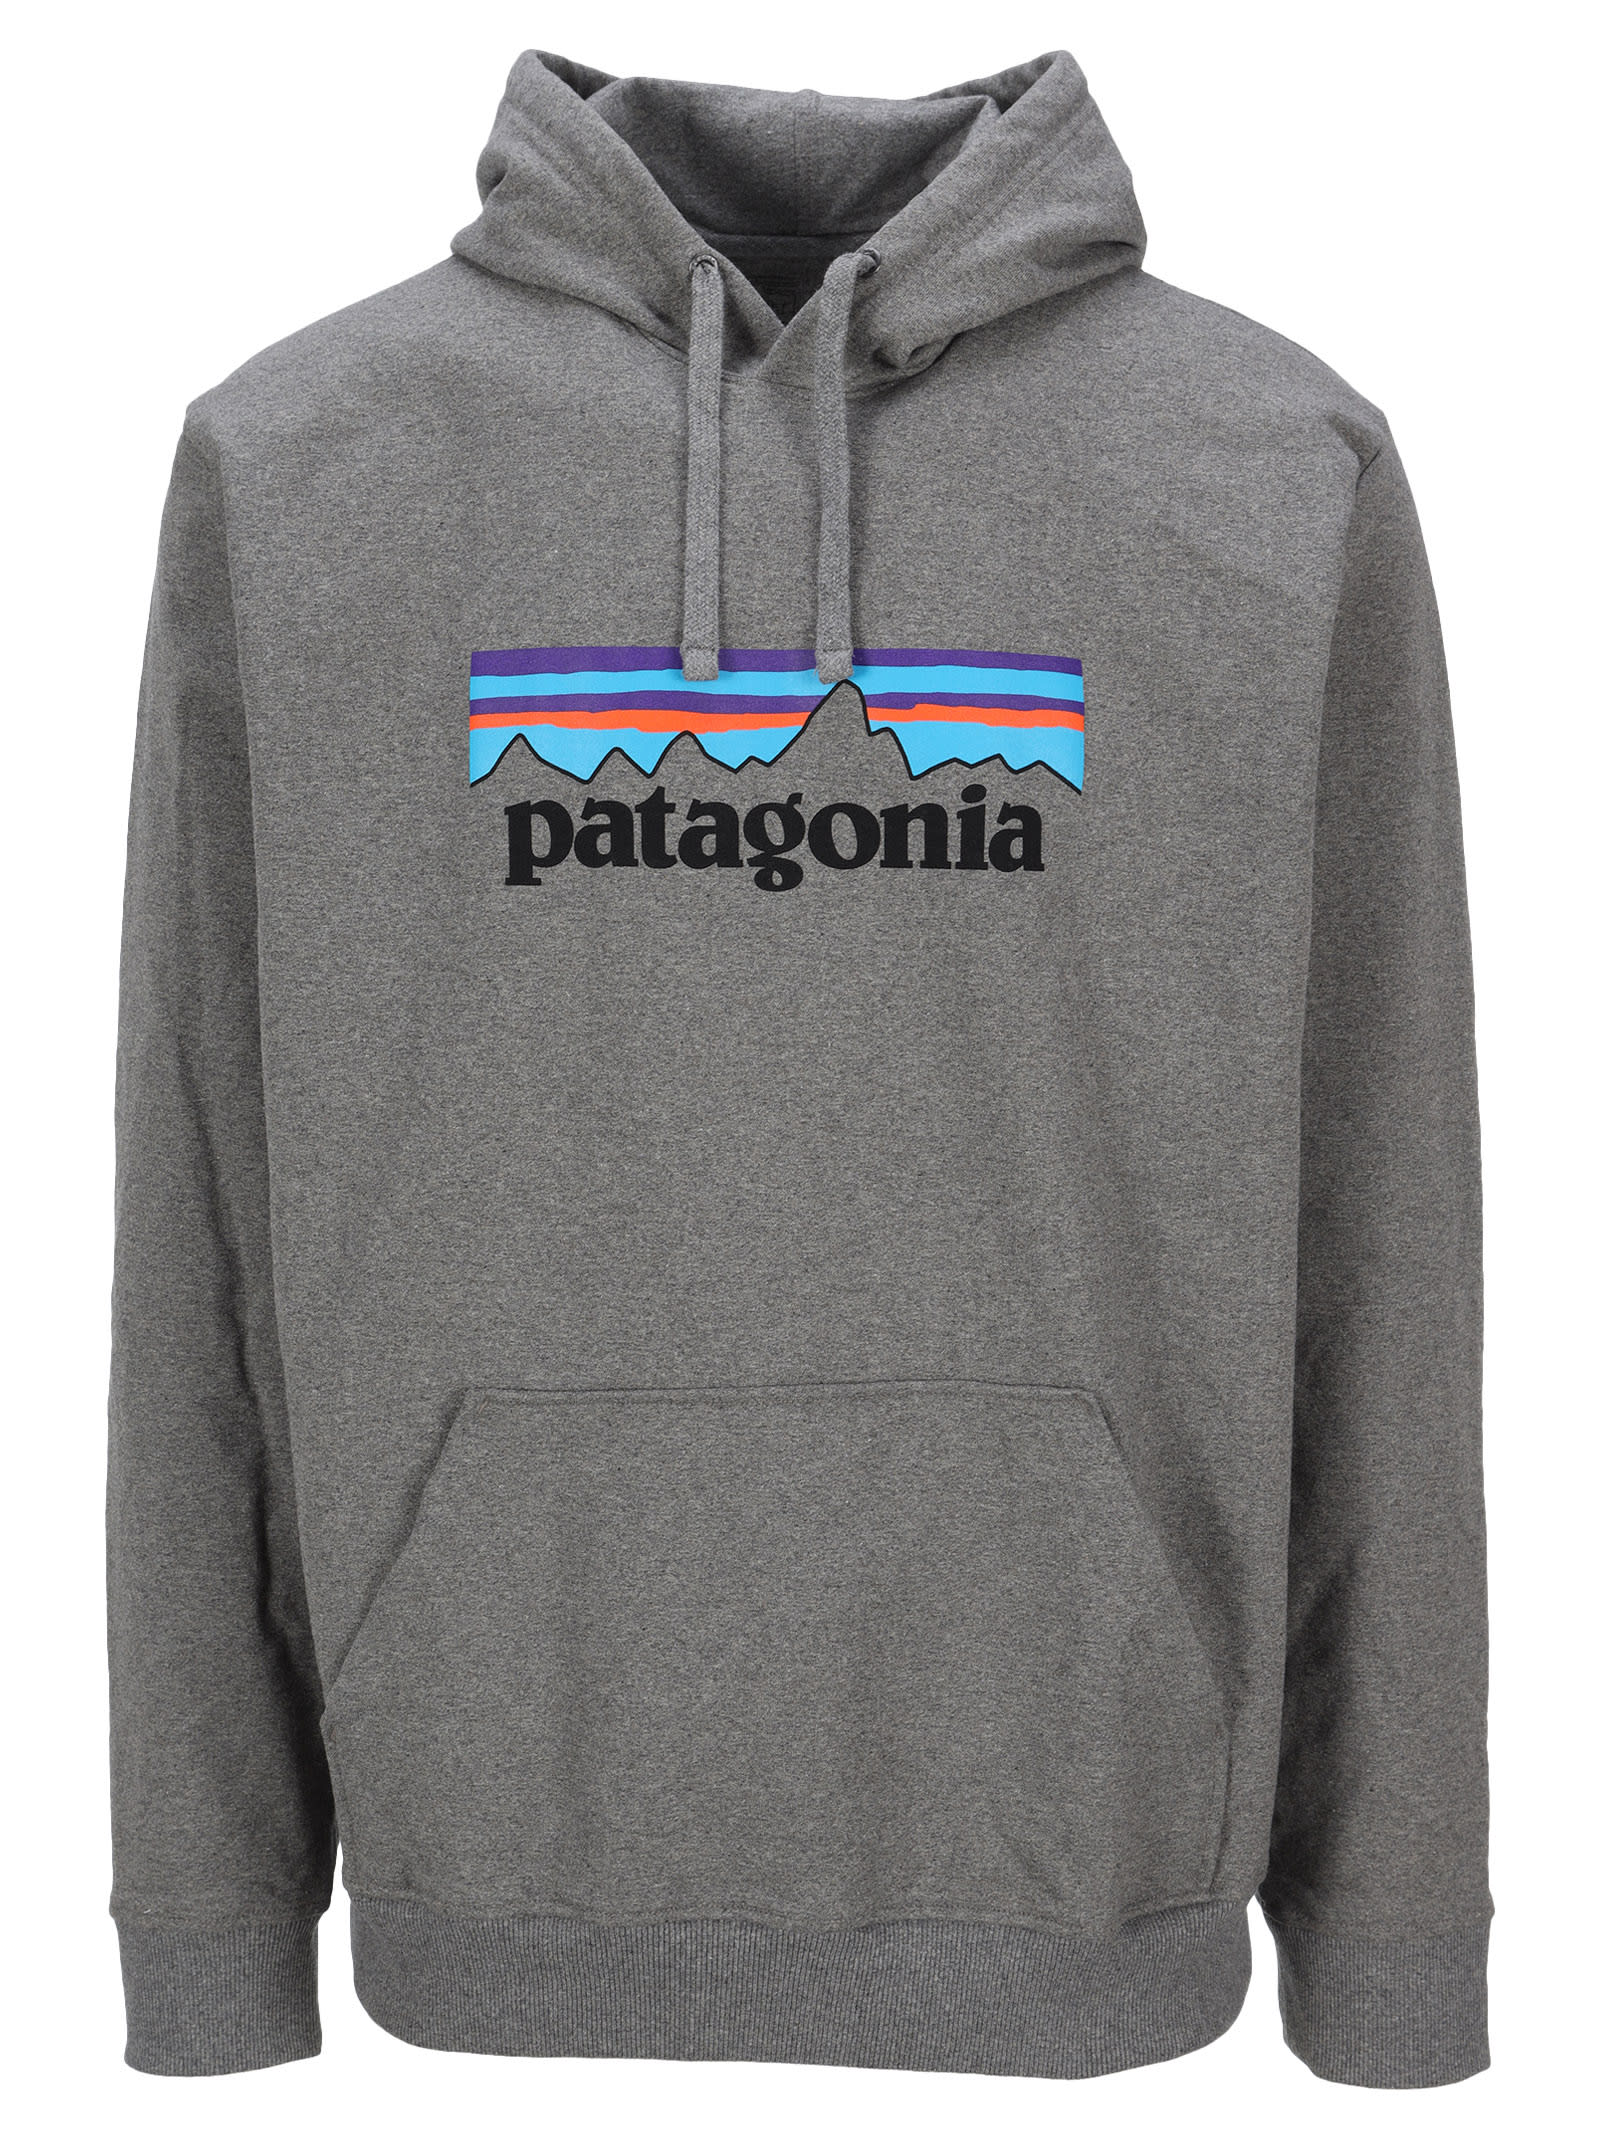 Cotton Blend P-6 Uprisal Hoodie By Patagonia. Featuring: - Drawstring Hood; - Logo Print To The Front; - Kangaroo Pocket; - Long Sleeves; - Ribbed Hem And Cuffs. Composition: 48% RECYCLED COTTON, 47% RECYCLED POLYESTER, 5% ELASTANE